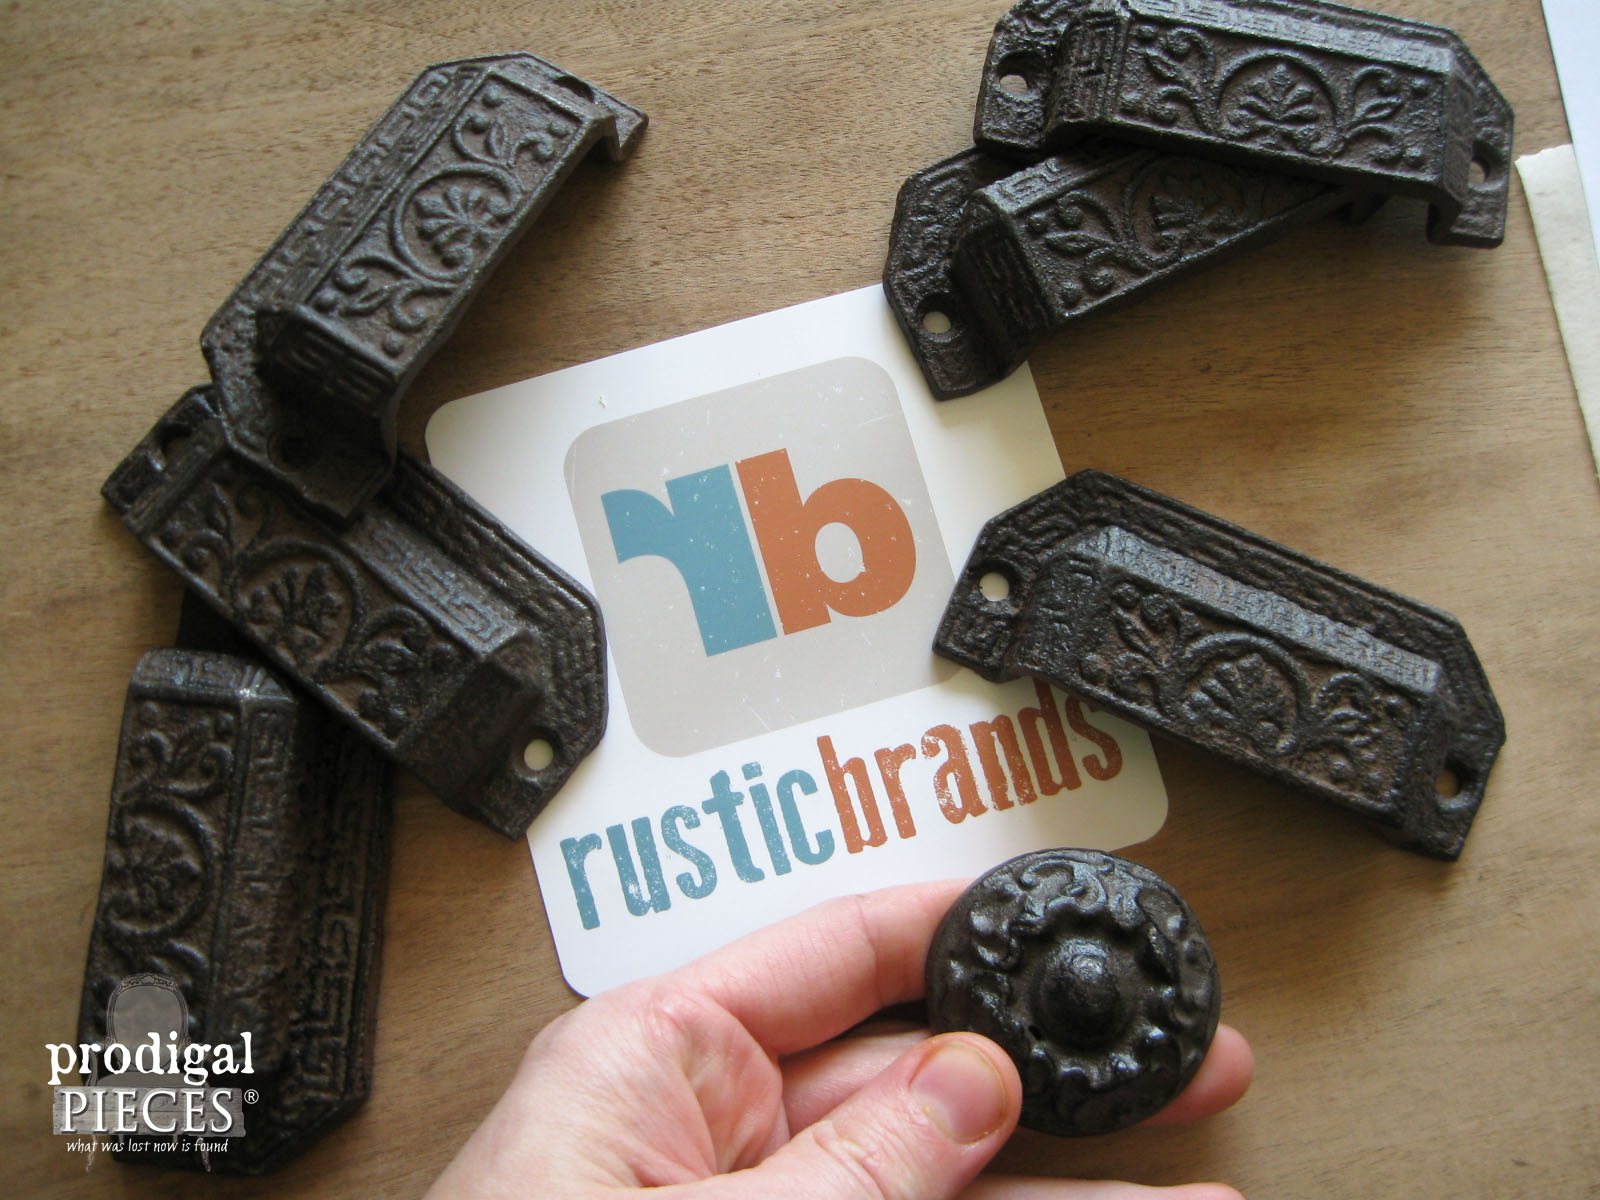 Rustic Brands Cast Iron Pulls | Prodigal Pieces | www.prodigalpieces.com